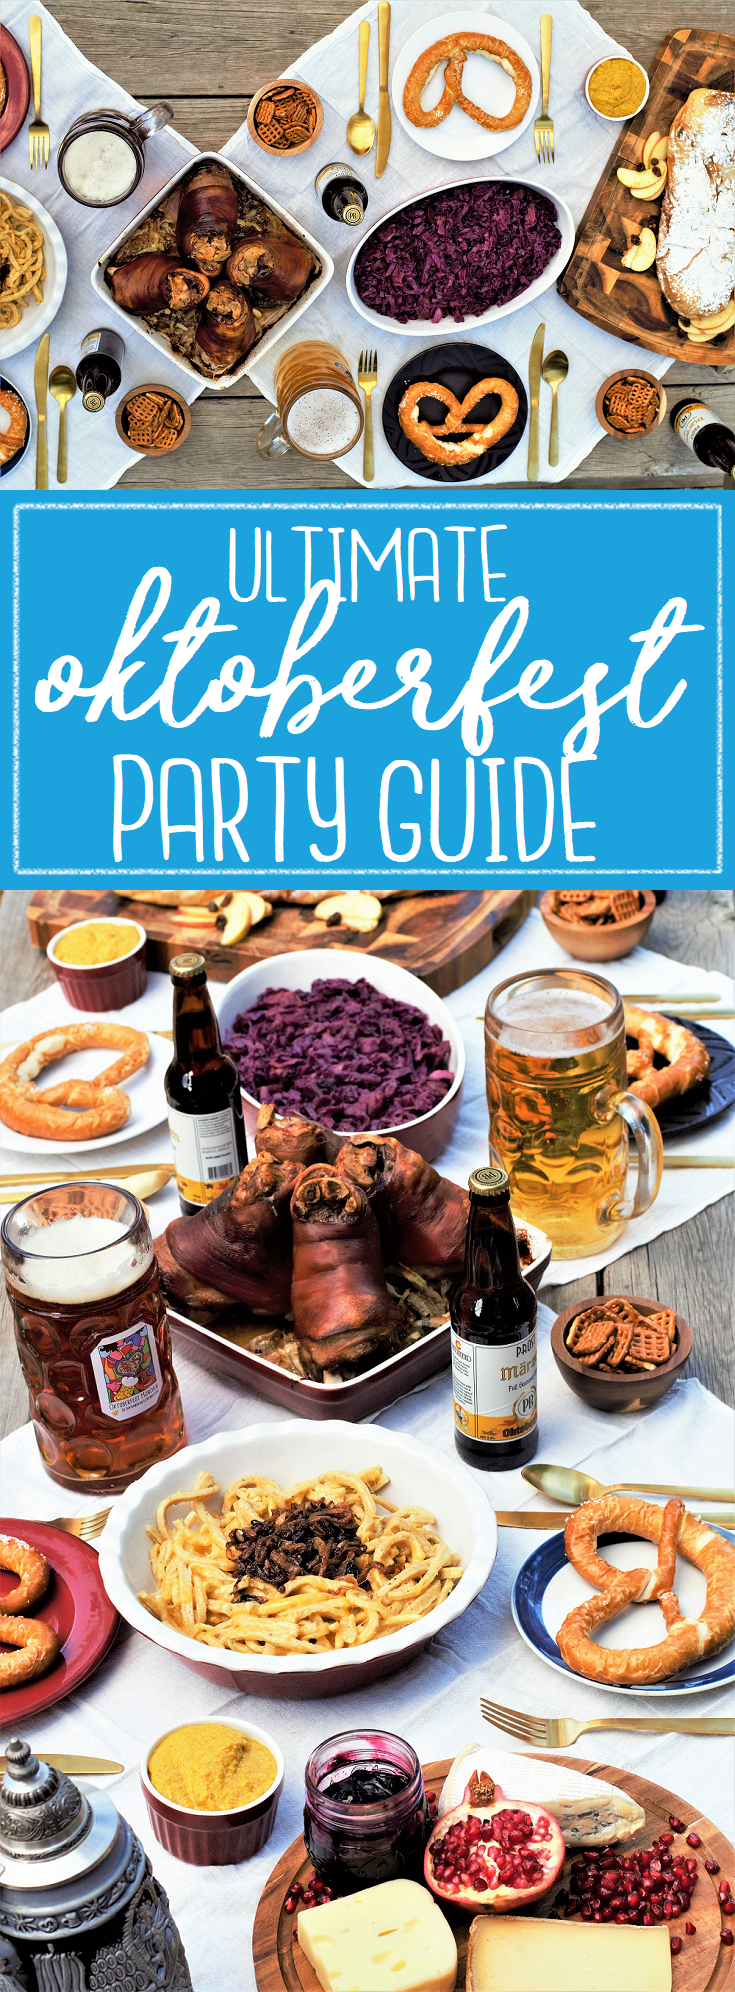 Ultimate oktoberfest party guide mountain cravings the first day of fall is the perfect way to wrap up oktoberfeast week ive had so much fun making my favorite bavarian recipes to share with you forumfinder Choice Image